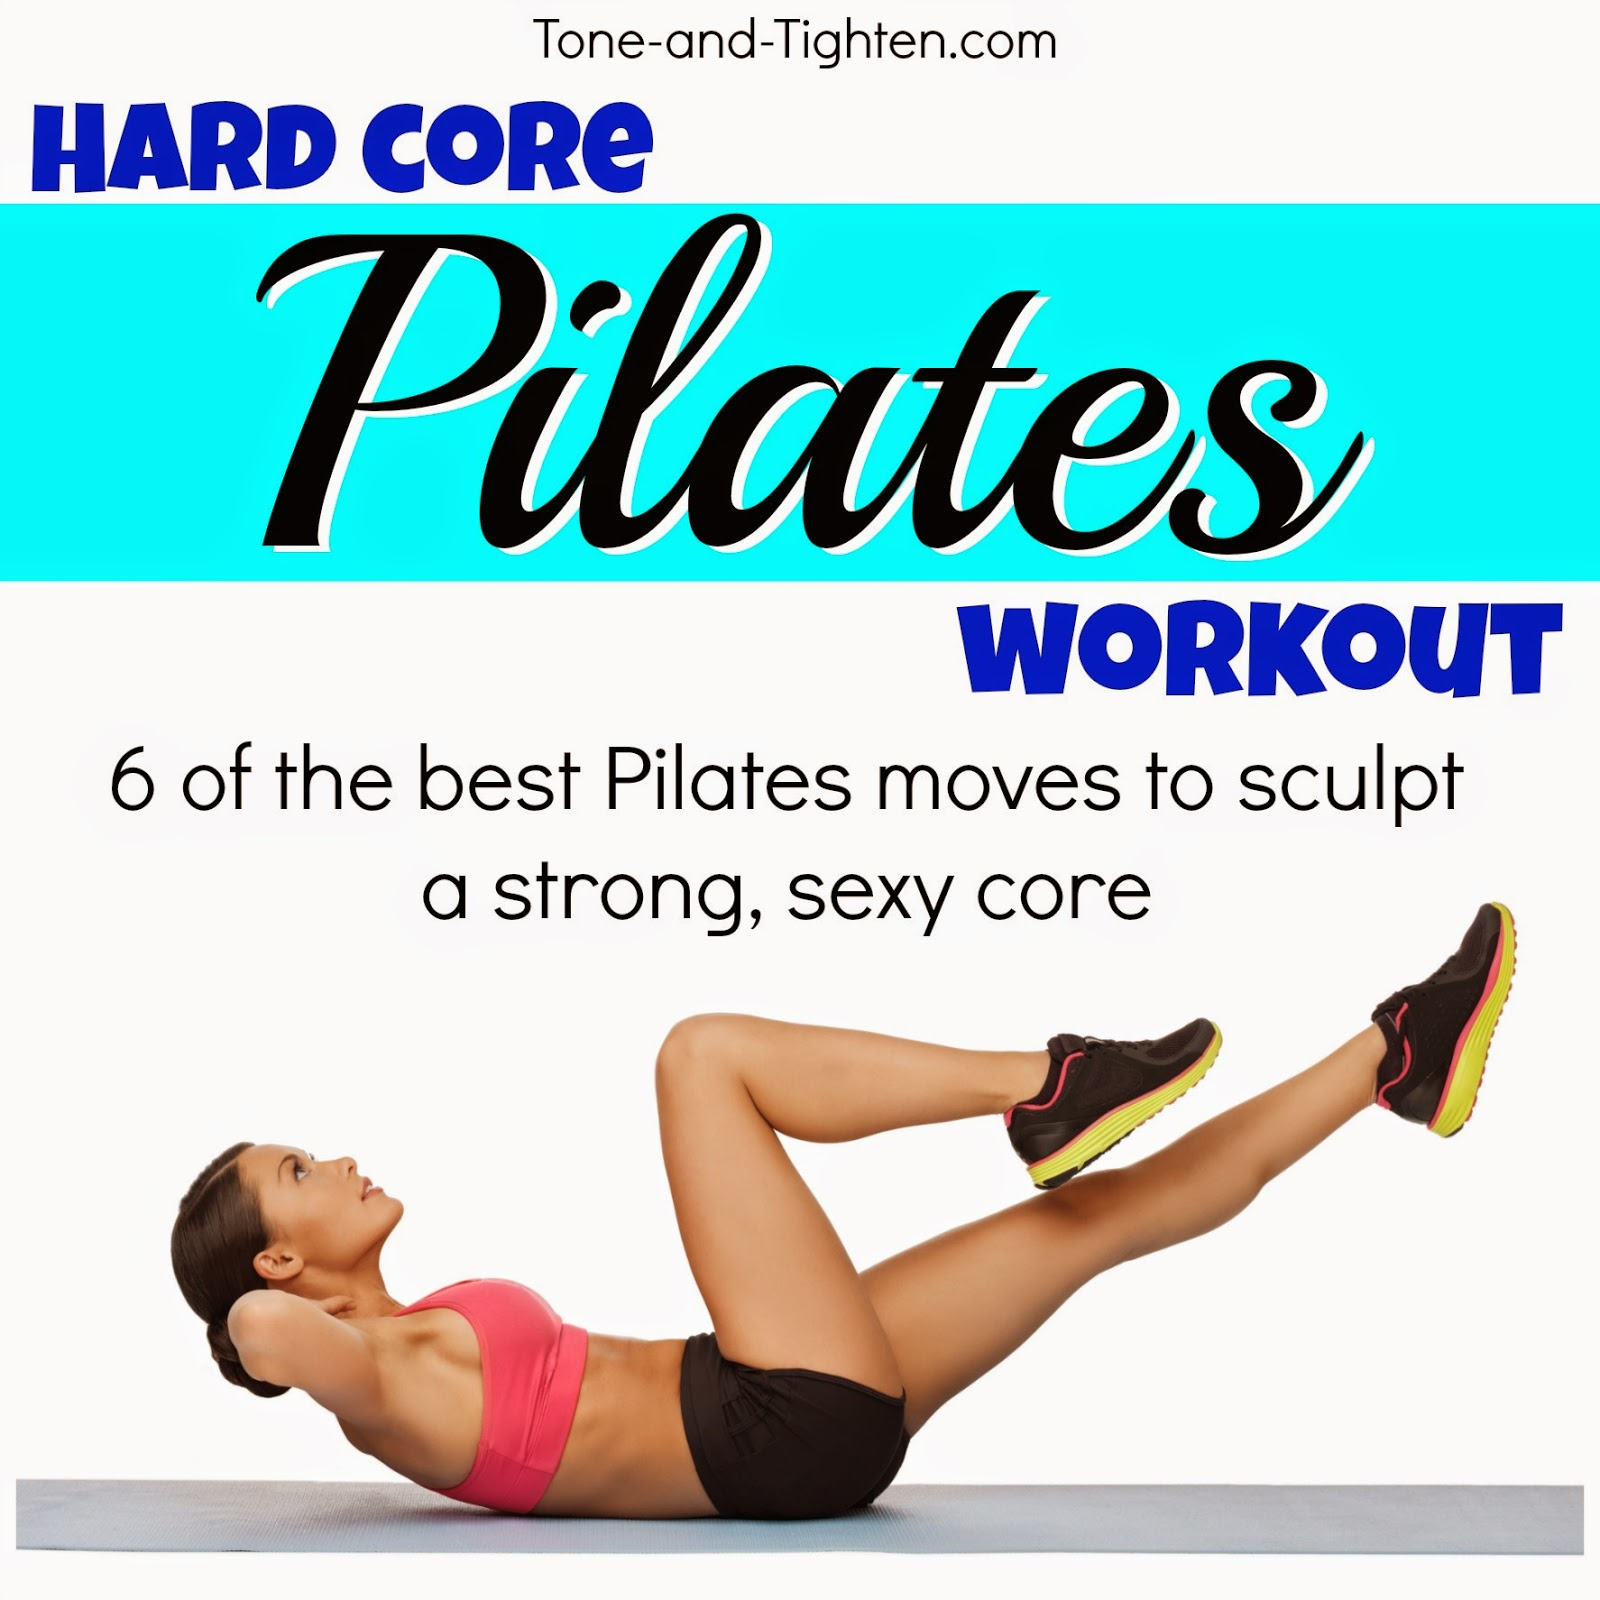 Hard Core Pilates Workout At Home | Tone and Tighten